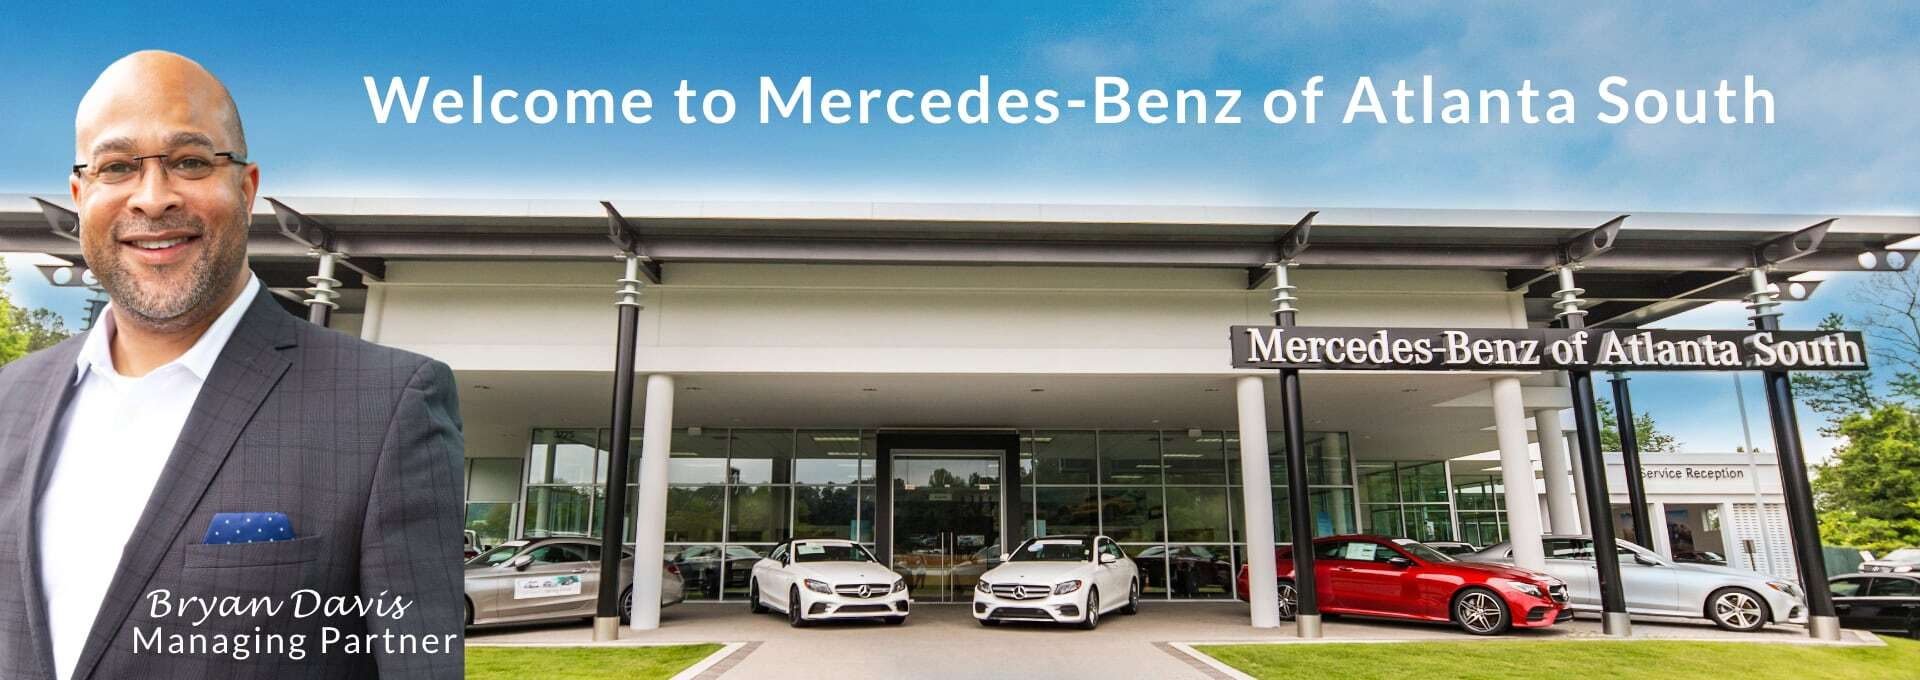 Mercedes Benz Dealers >> Mercedes Benz Dealership Atlanta Ga Pre Owned Cars Mercedes Benz